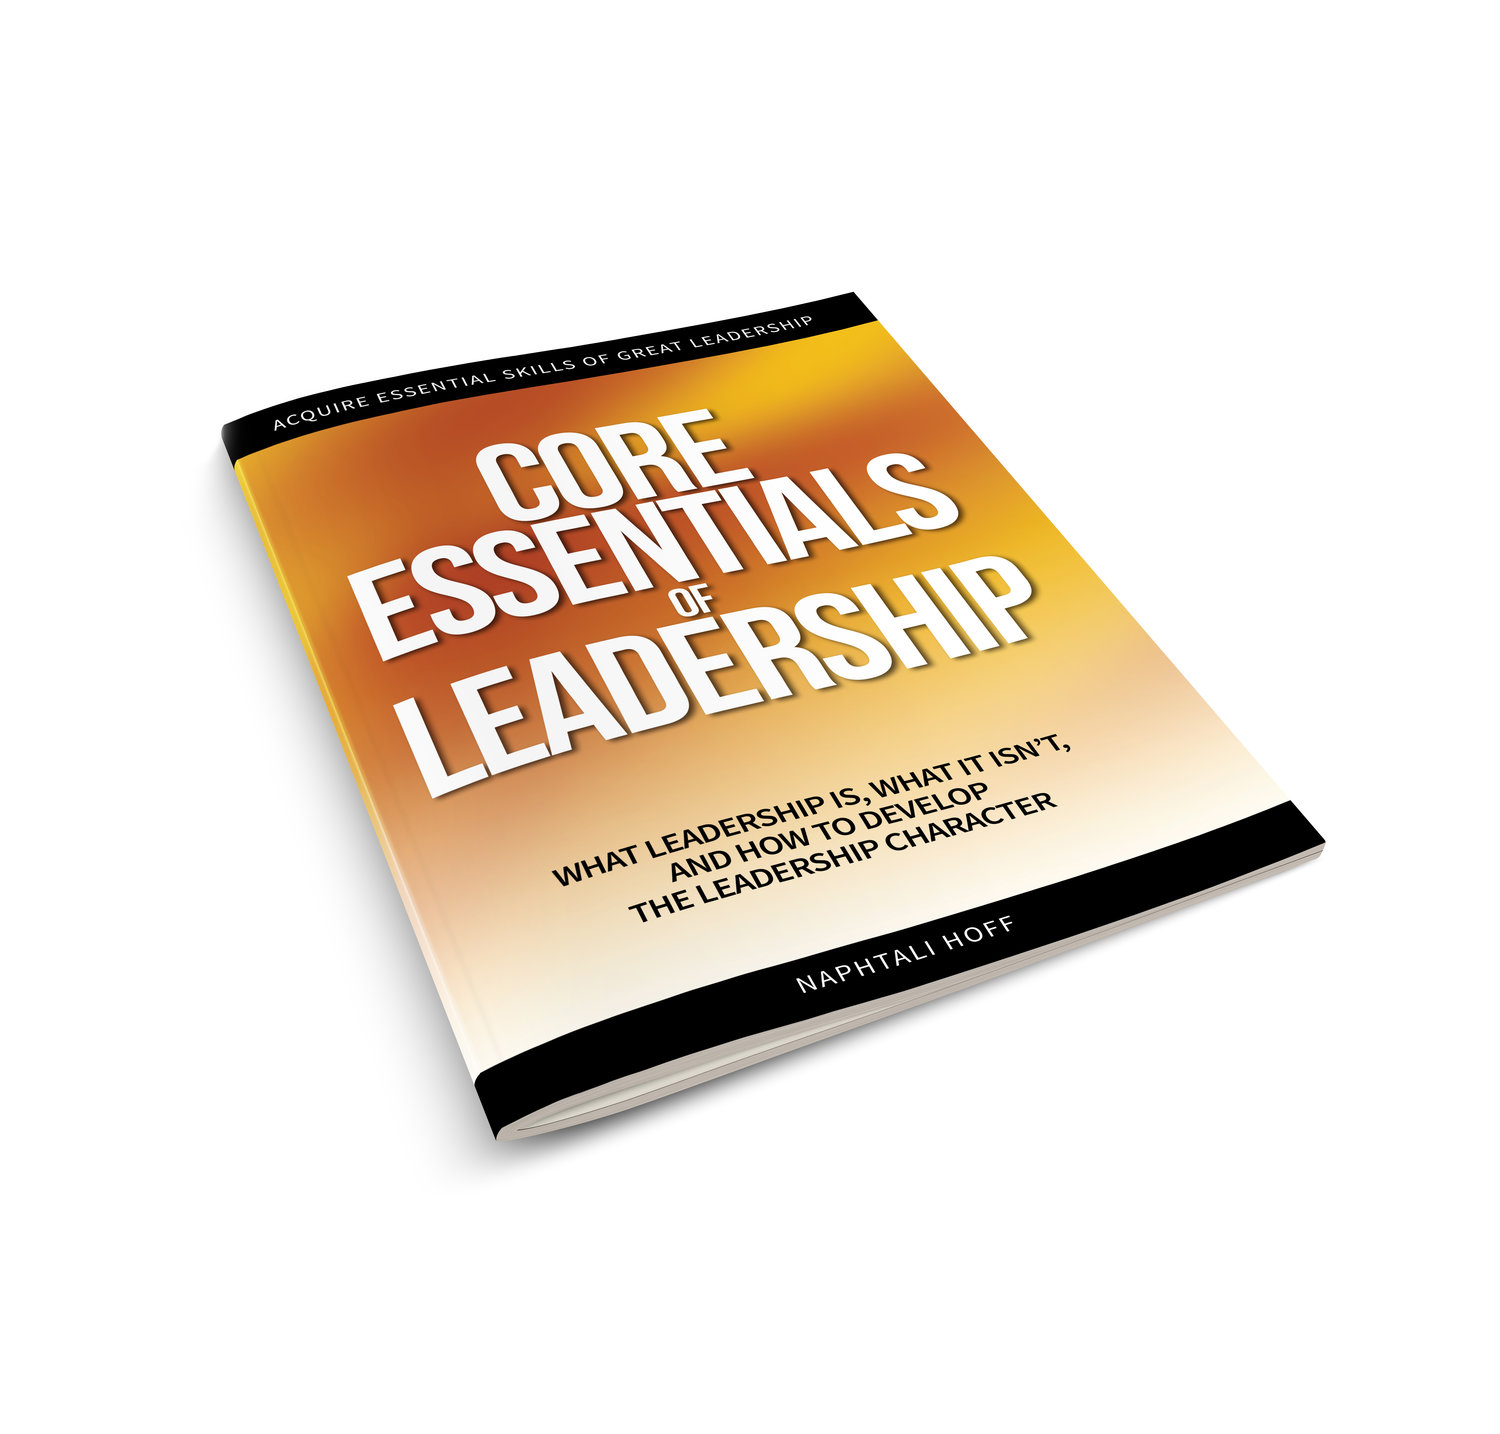 Core essentials of leadership free e book impactful coaching impactfulcore leadership ebookmockup 2g fandeluxe Ebook collections